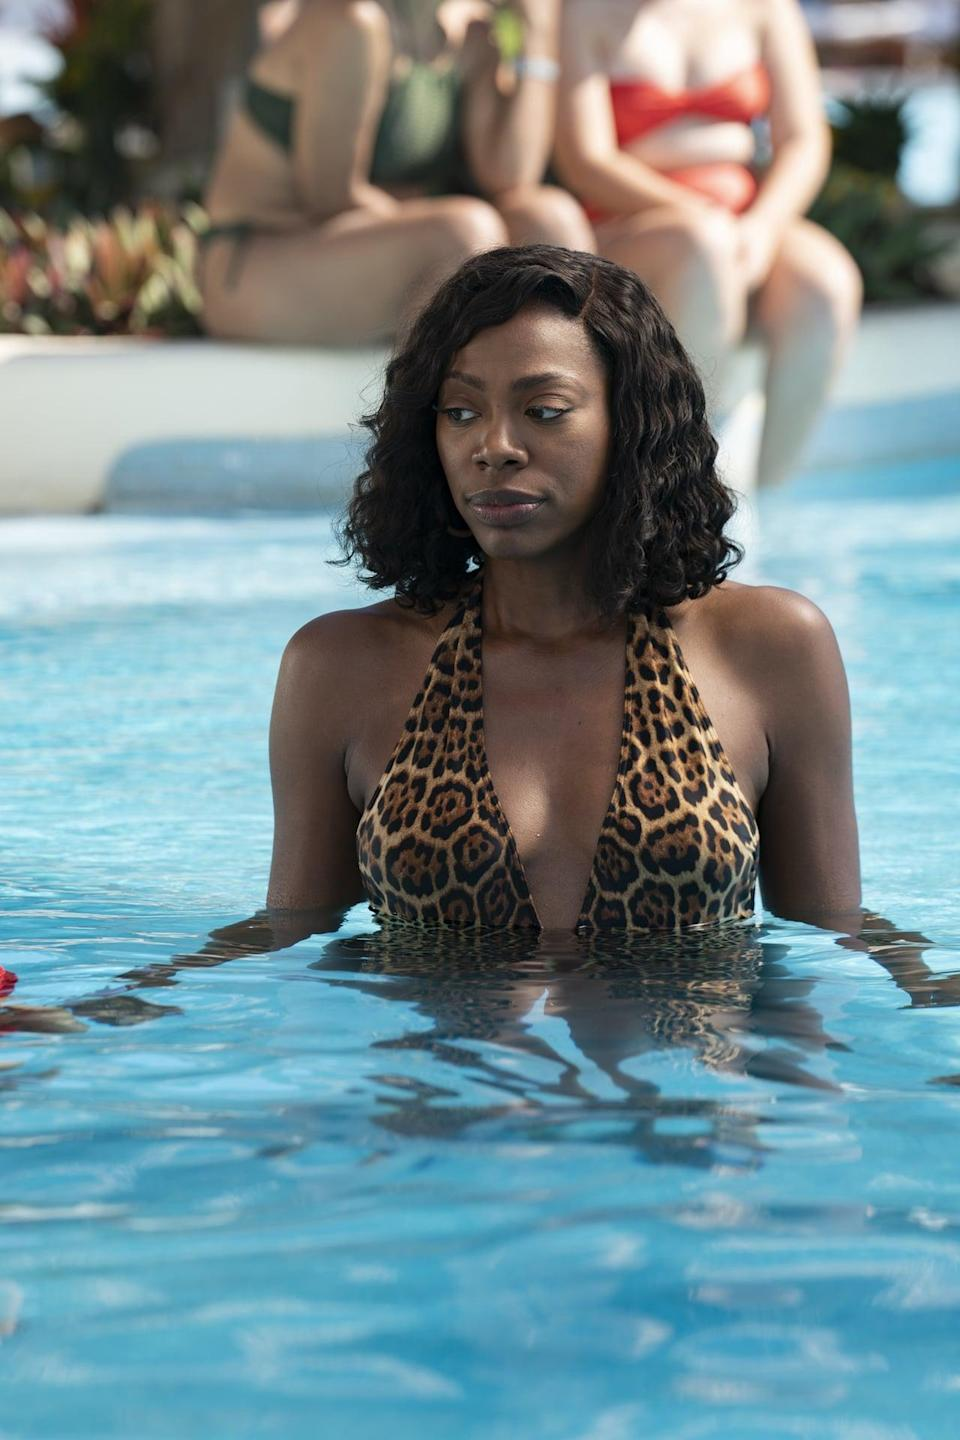 """<p>We're obsessed with Molly (Yvonne Orji)'s <a href=""""https://www.popsugar.com/fashion/yvonne-orji-insecure-mexico-vacation-style-47506054"""" class=""""link rapid-noclick-resp"""" rel=""""nofollow noopener"""" target=""""_blank"""" data-ylk=""""slk:vacation style"""">vacation style</a>. </p>"""